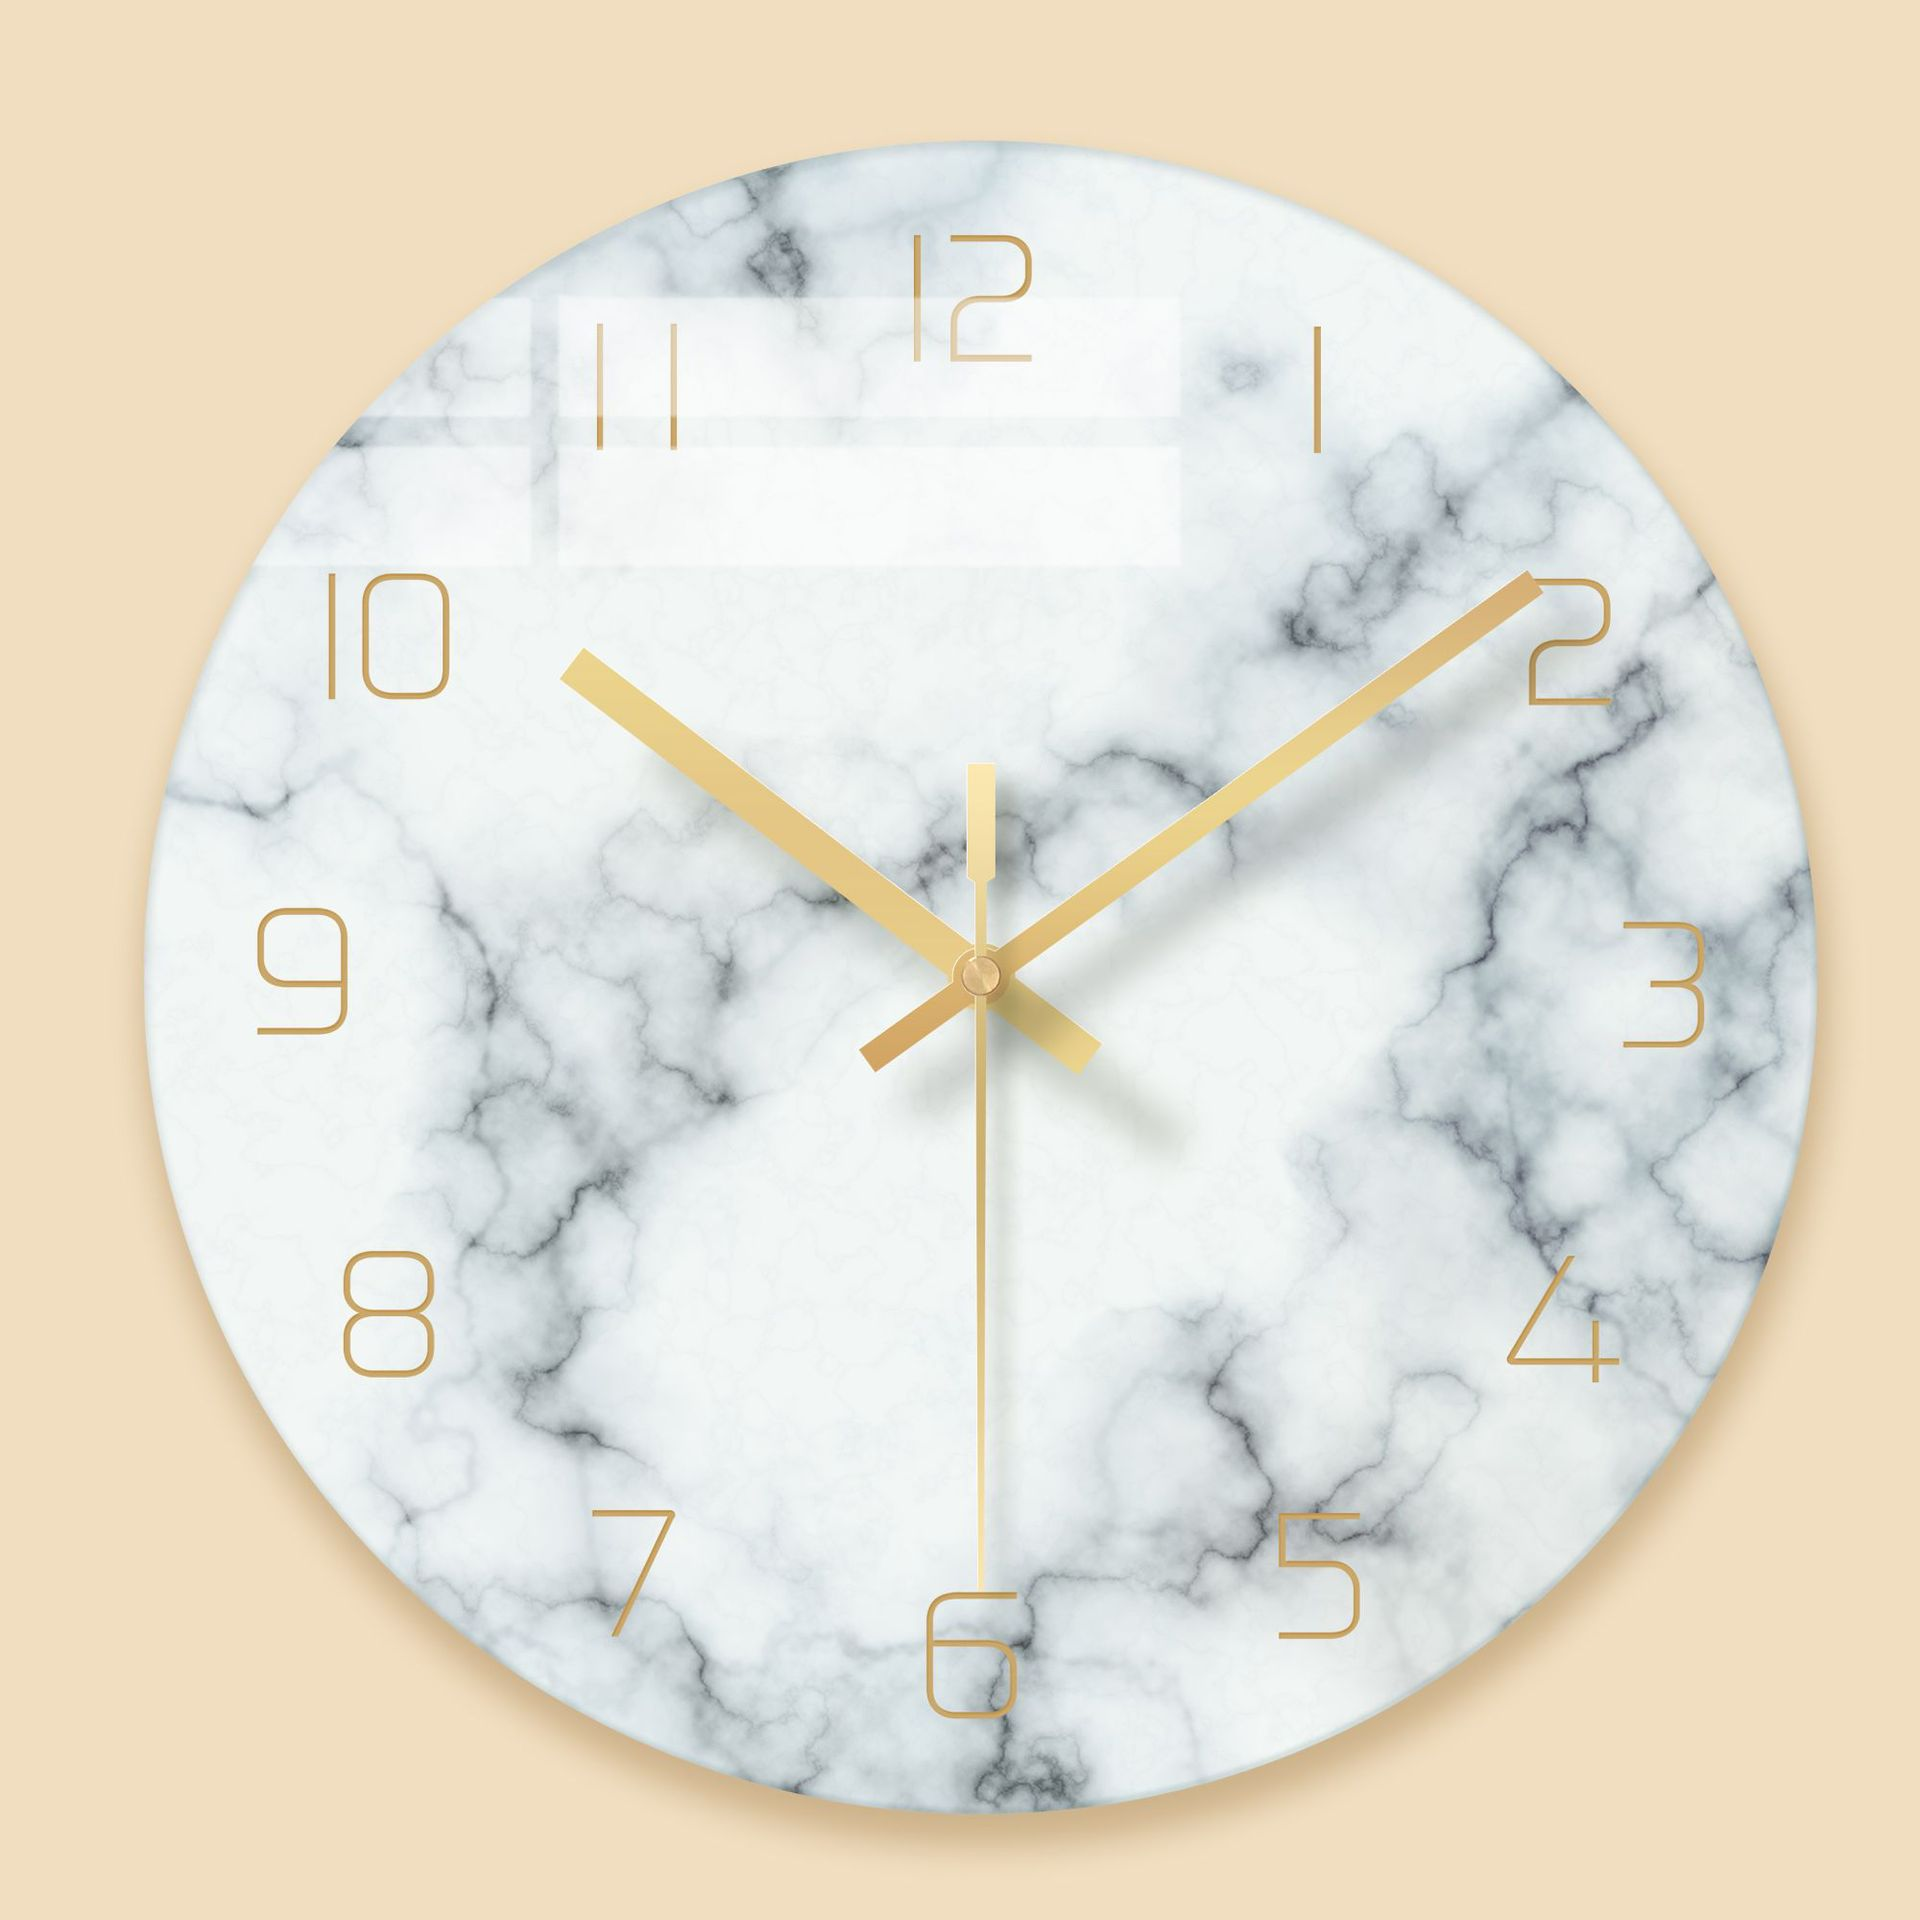 Creative Nordic Abstract Wall Clock Marble Texture Glass Clock Watch Home Office School Decoration Fun Gifts Dropshipping